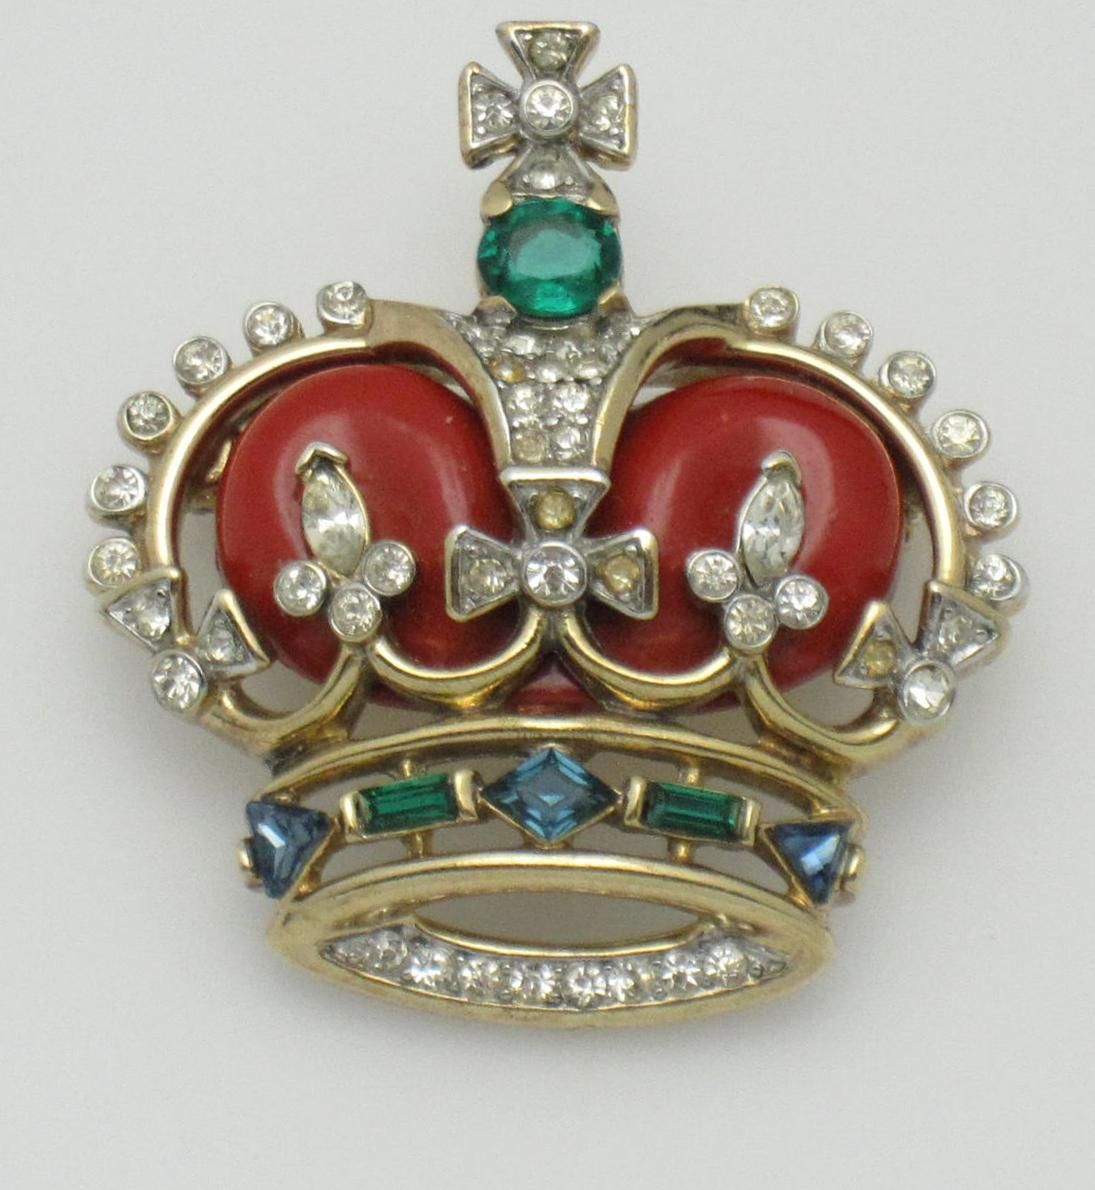 e5a6236c1c CROWN TRIFARI Coronation Jewels Figural Crown Brooch Pin Vintage ...